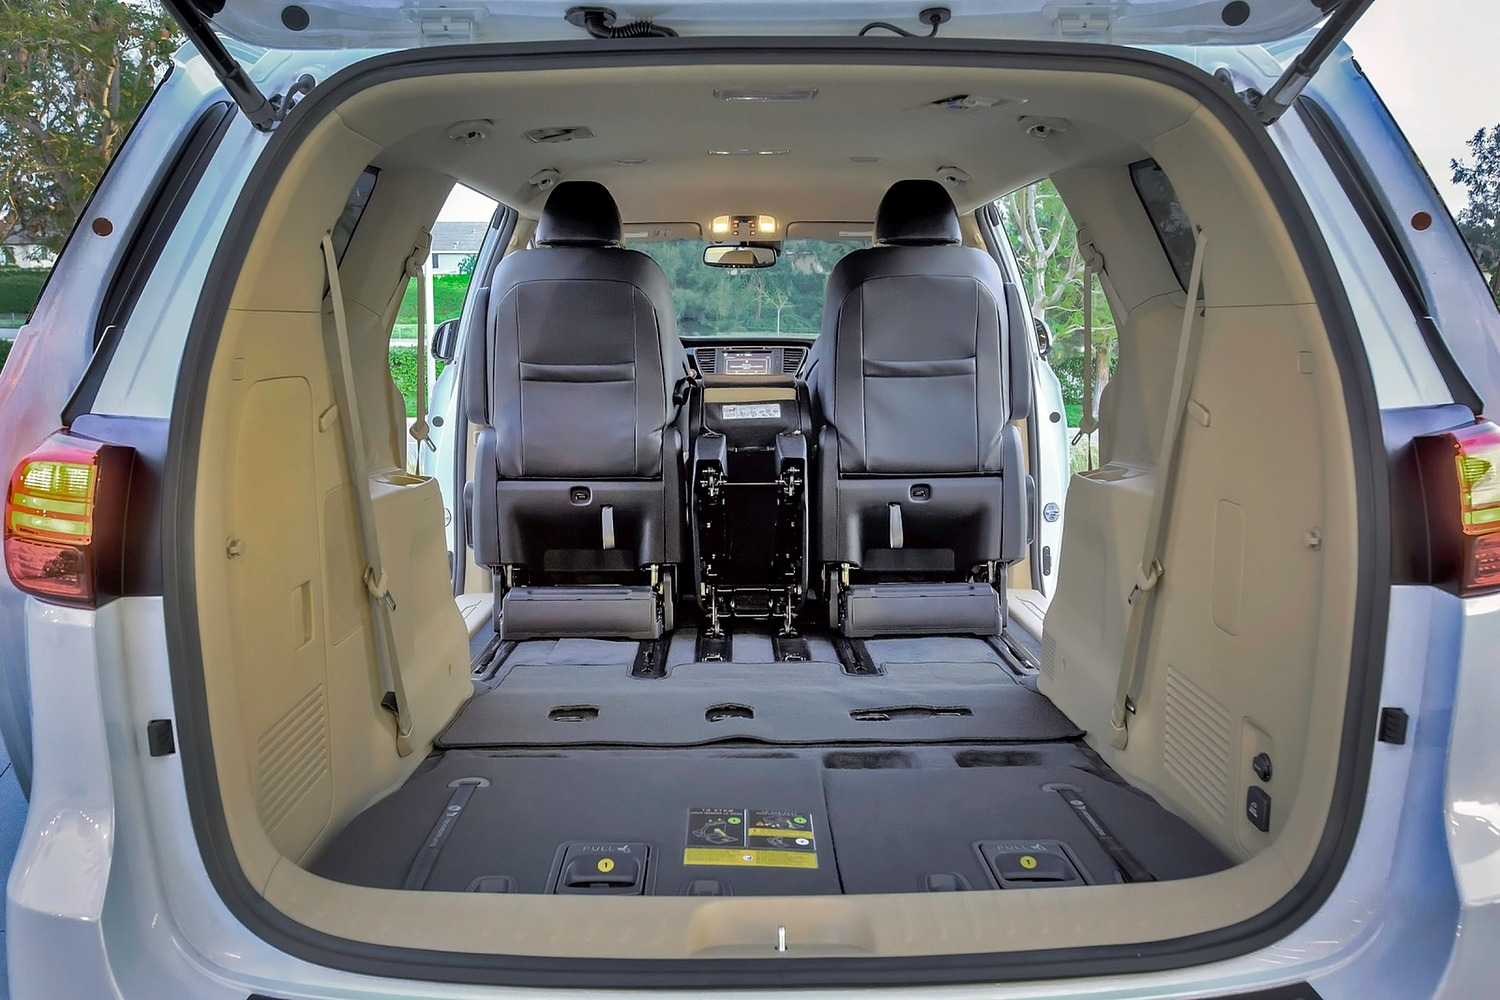 Kia Sedona SX Limited Passenger Minivan Cargo Area (2016 model year shown)